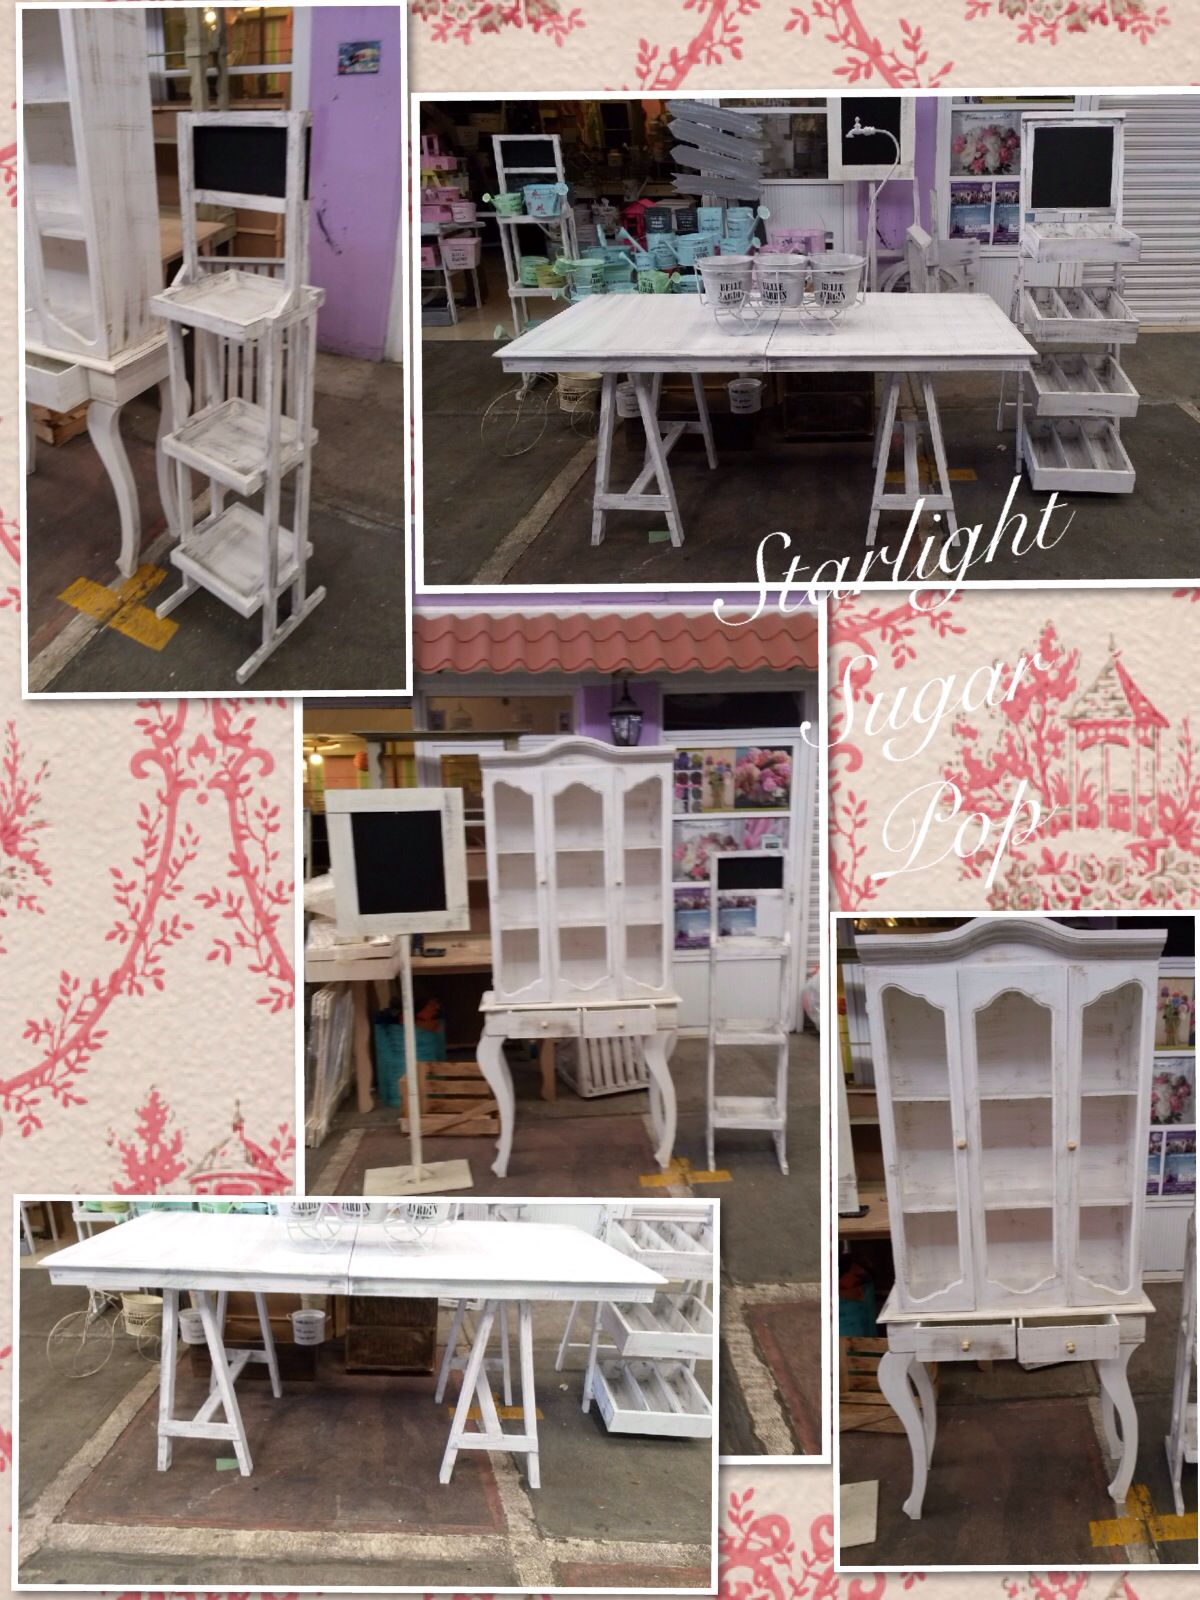 Muebles y accesorios starlight sugar pop candy bar 2 pinterest pop sugar pop and sugar - Accesorios de muebles ...